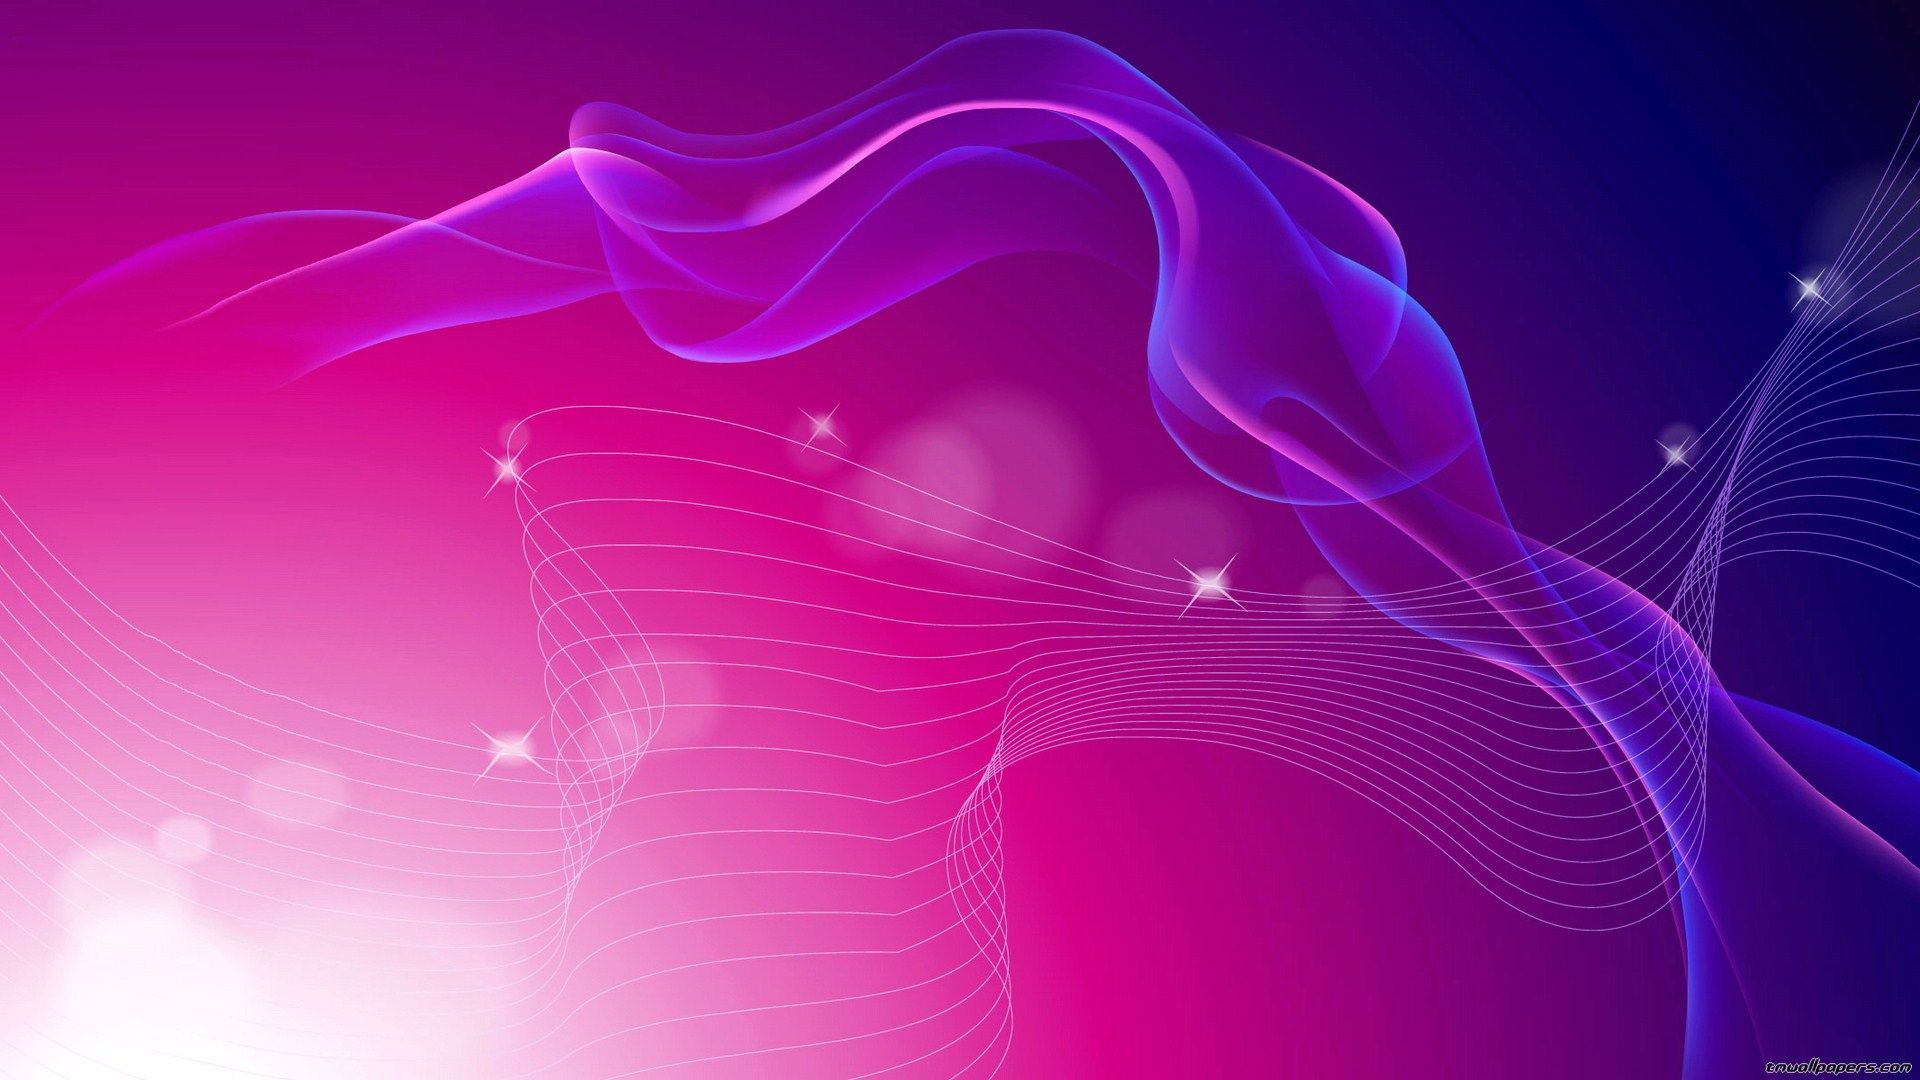 Pink And Purple Abstract Backgrounds